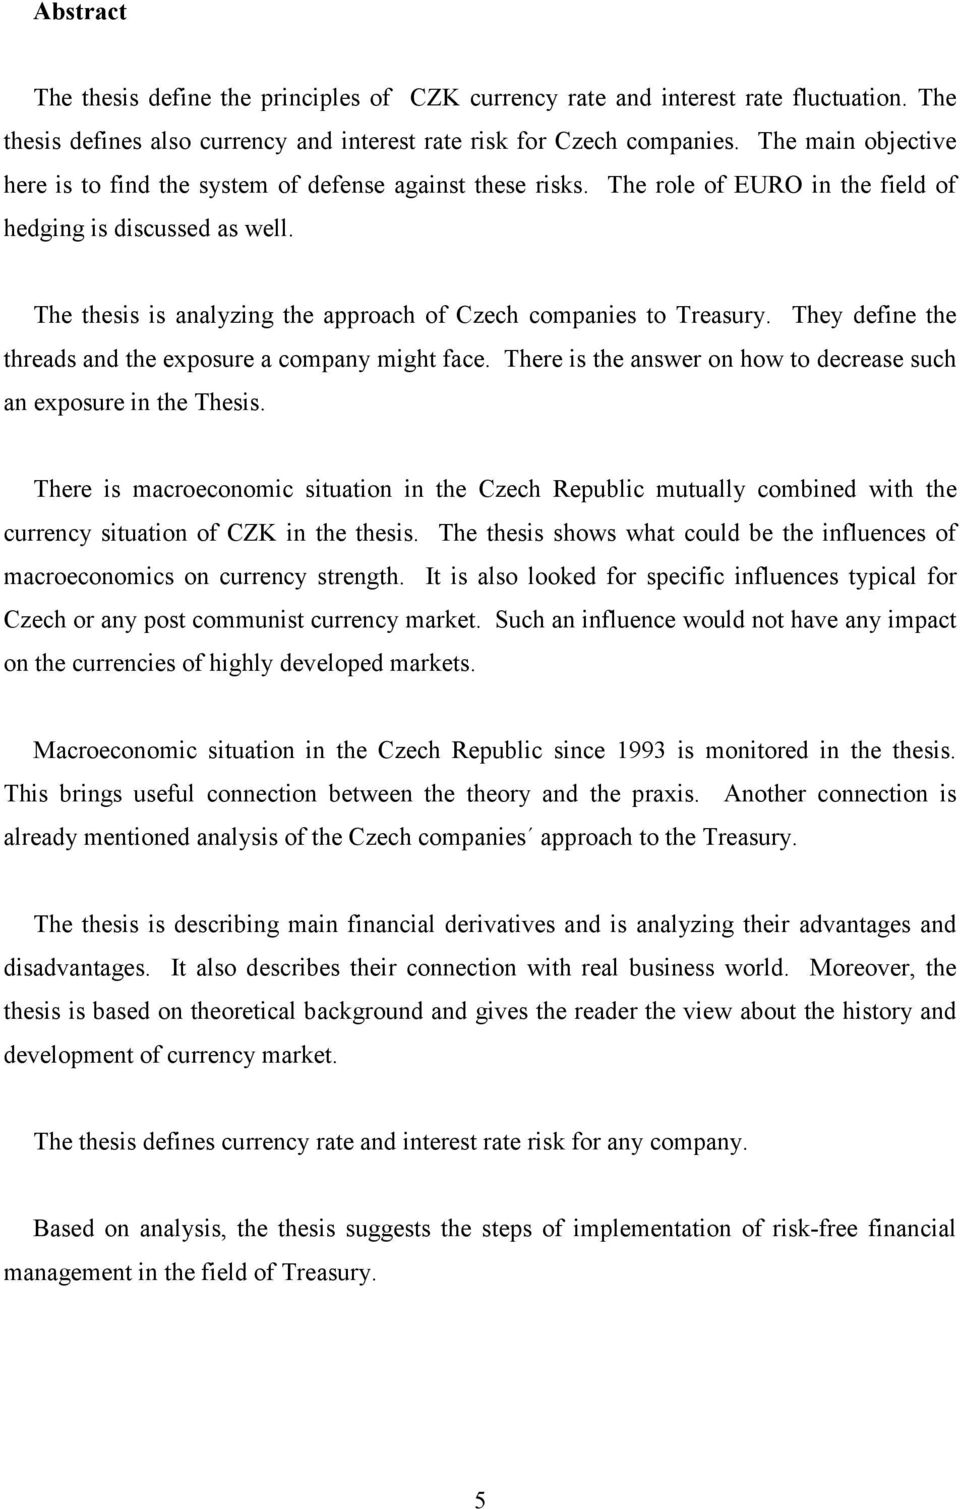 The thesis is analyzing the approach of Czech companies to Treasury. They define the threads and the exposure a company might face.